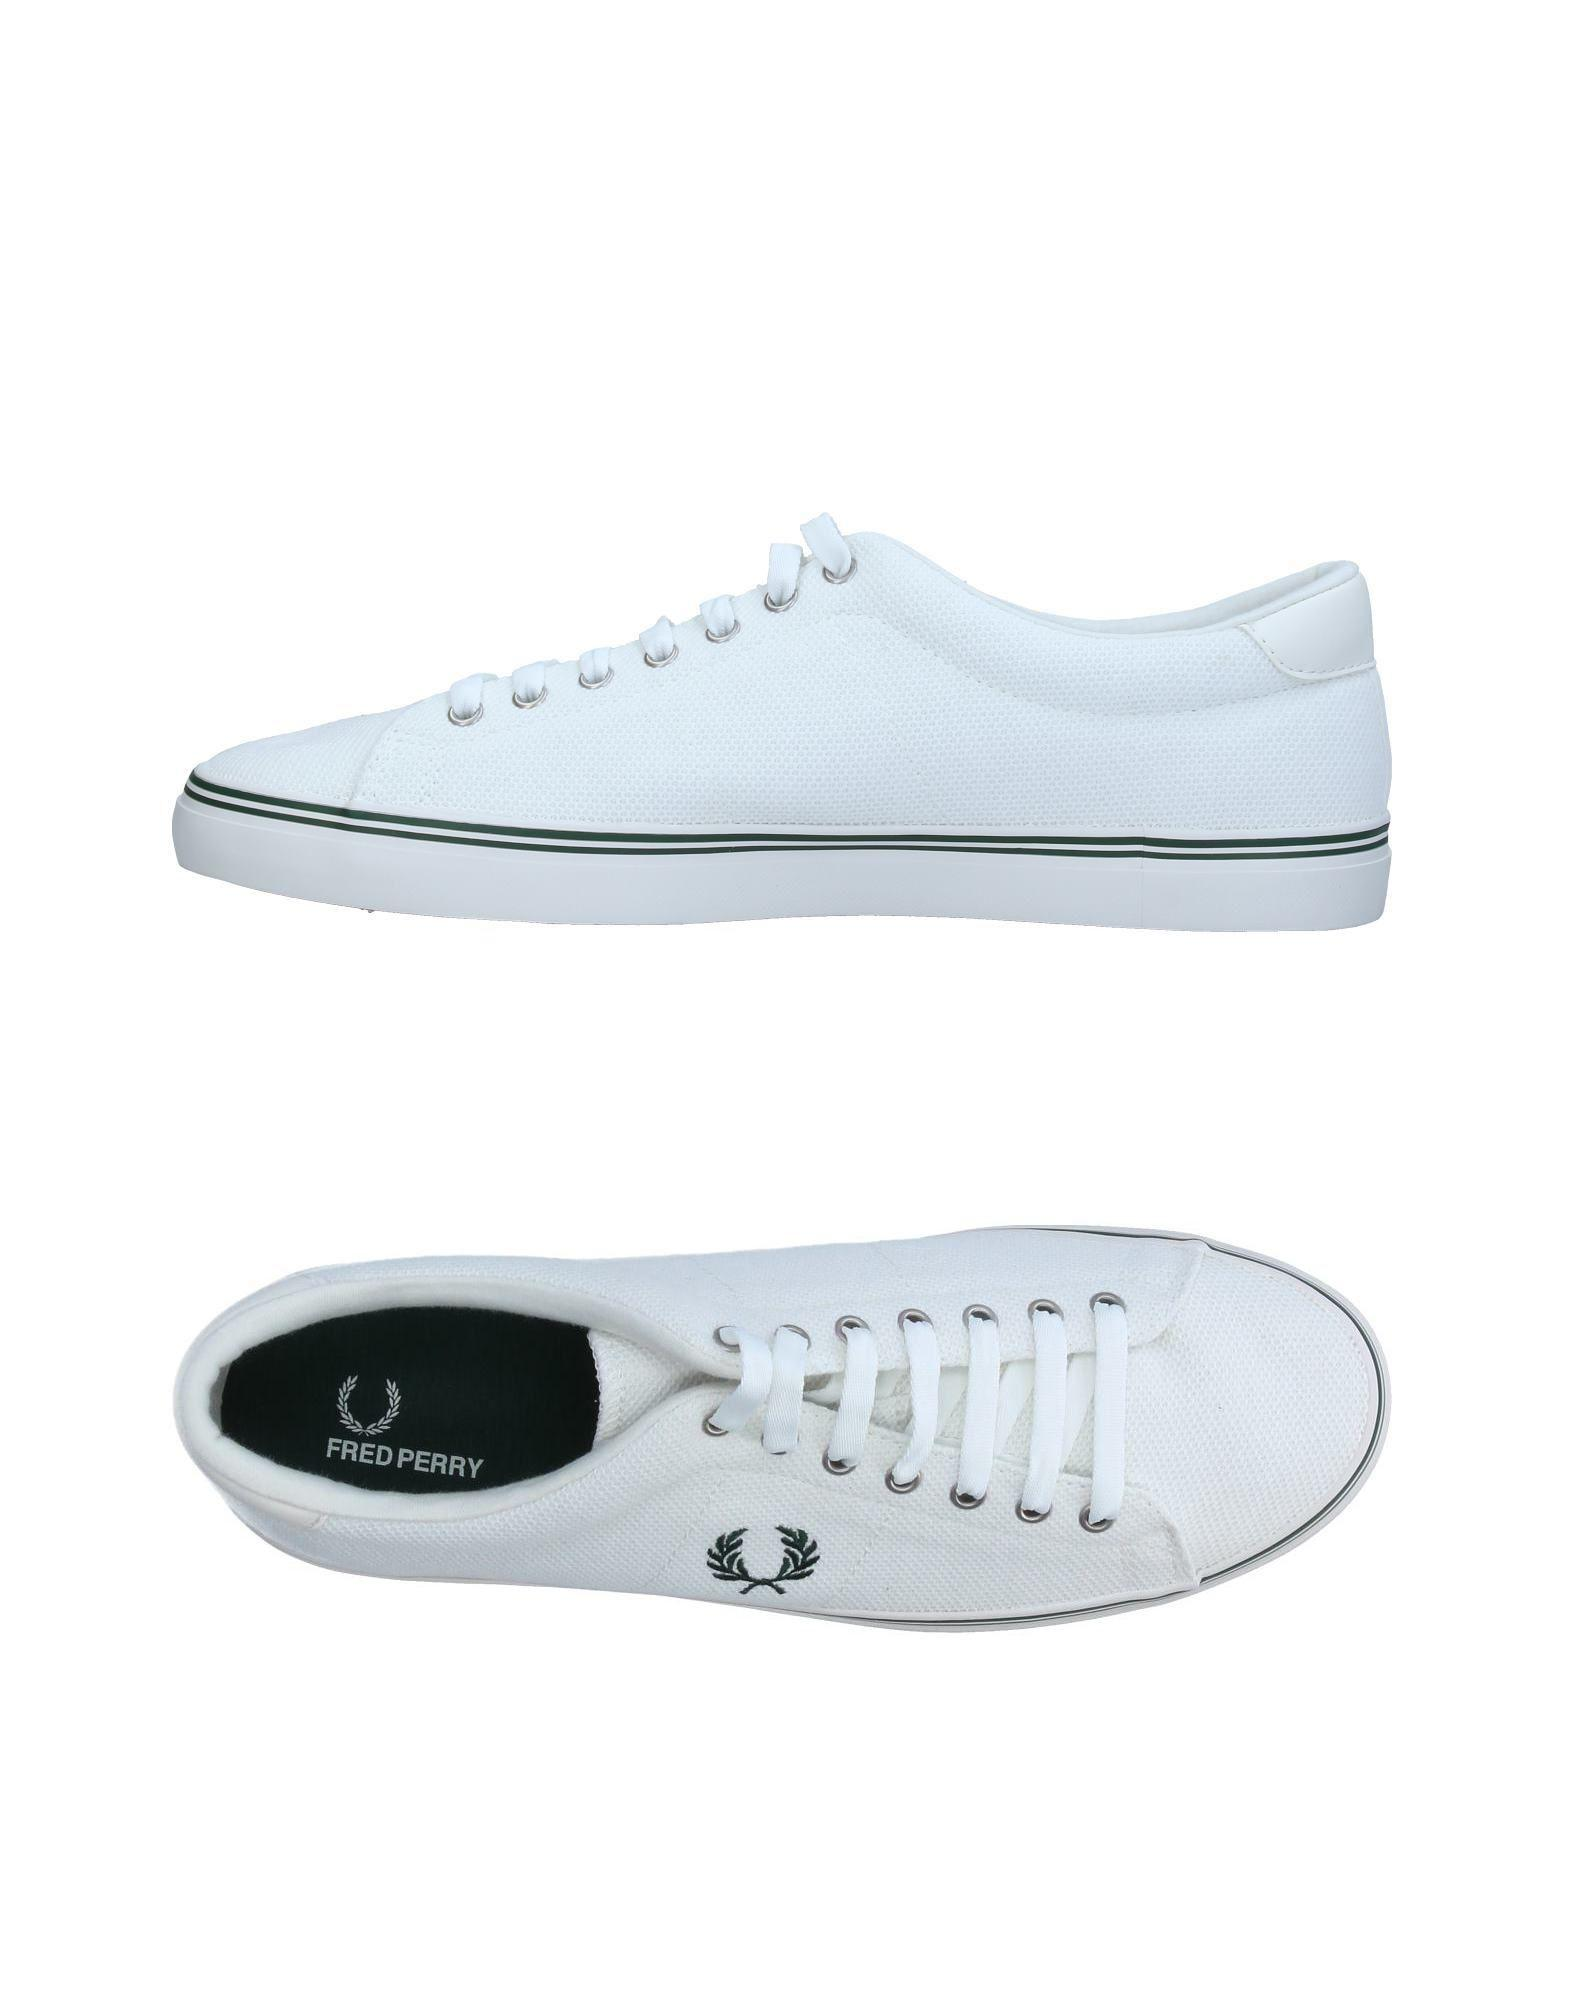 Crime Lacées Enfants London Chaussures De Sport Salut-top - Blanc inFwAE4Qic